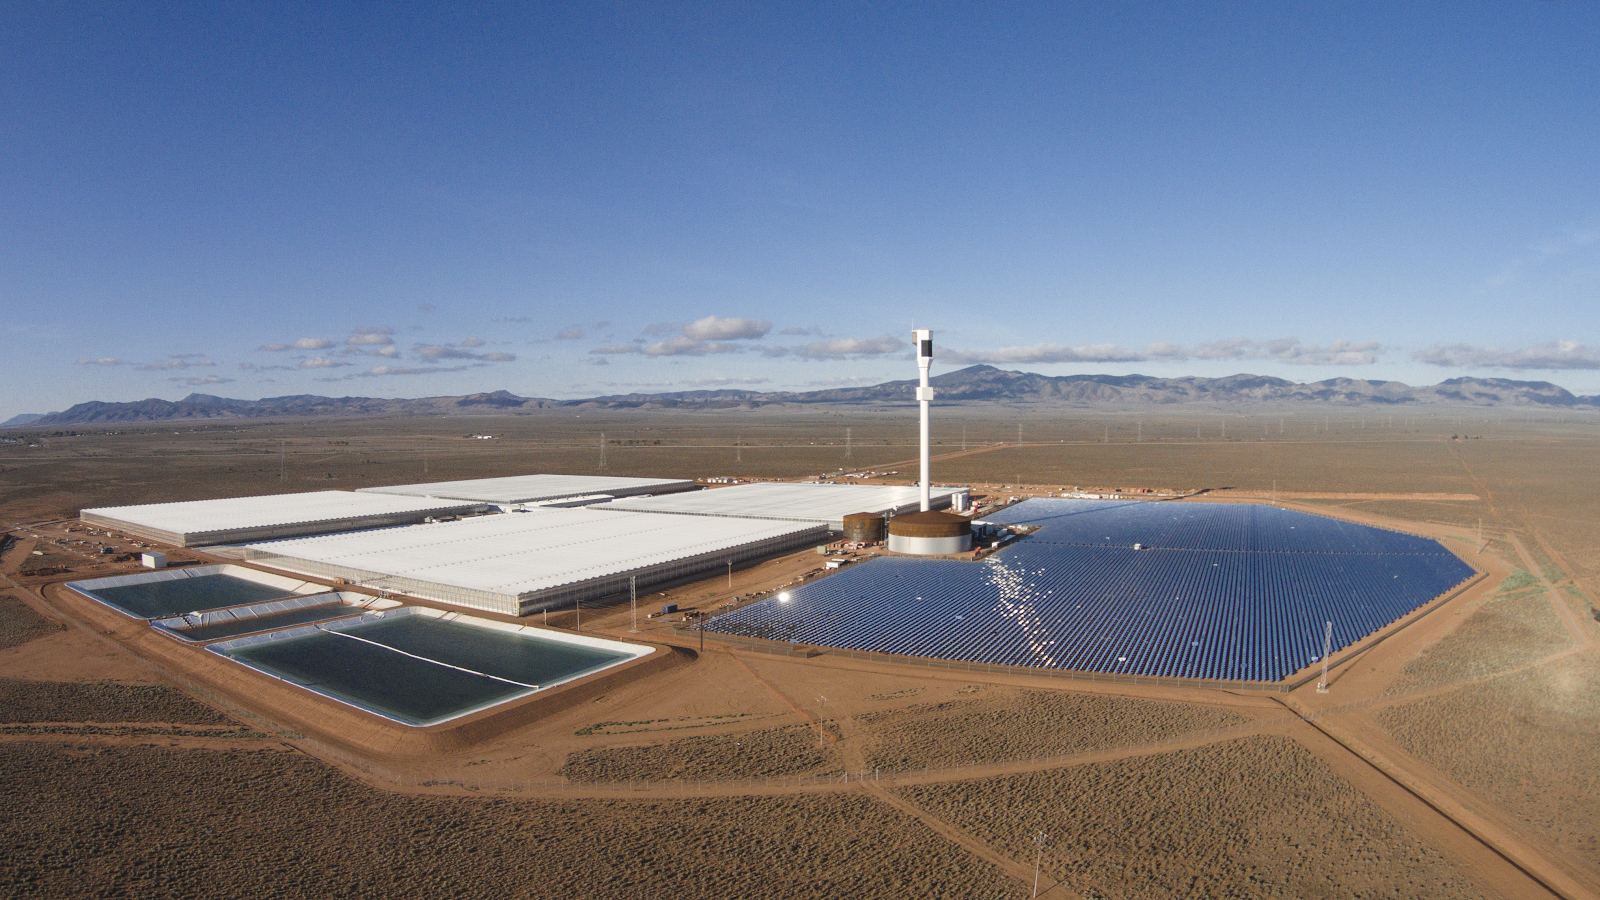 Sundrop Farms' greenhouse facility in South Australia. Solar energy generated on site is used to power the facility, and a thermal desalination plant converts seawater from the nearby Spencer Gulf into freshwater for crops. The facility is expected to produce at least  15,000 tonnes of truss tomatoes  a year. | Source:  AgFunder